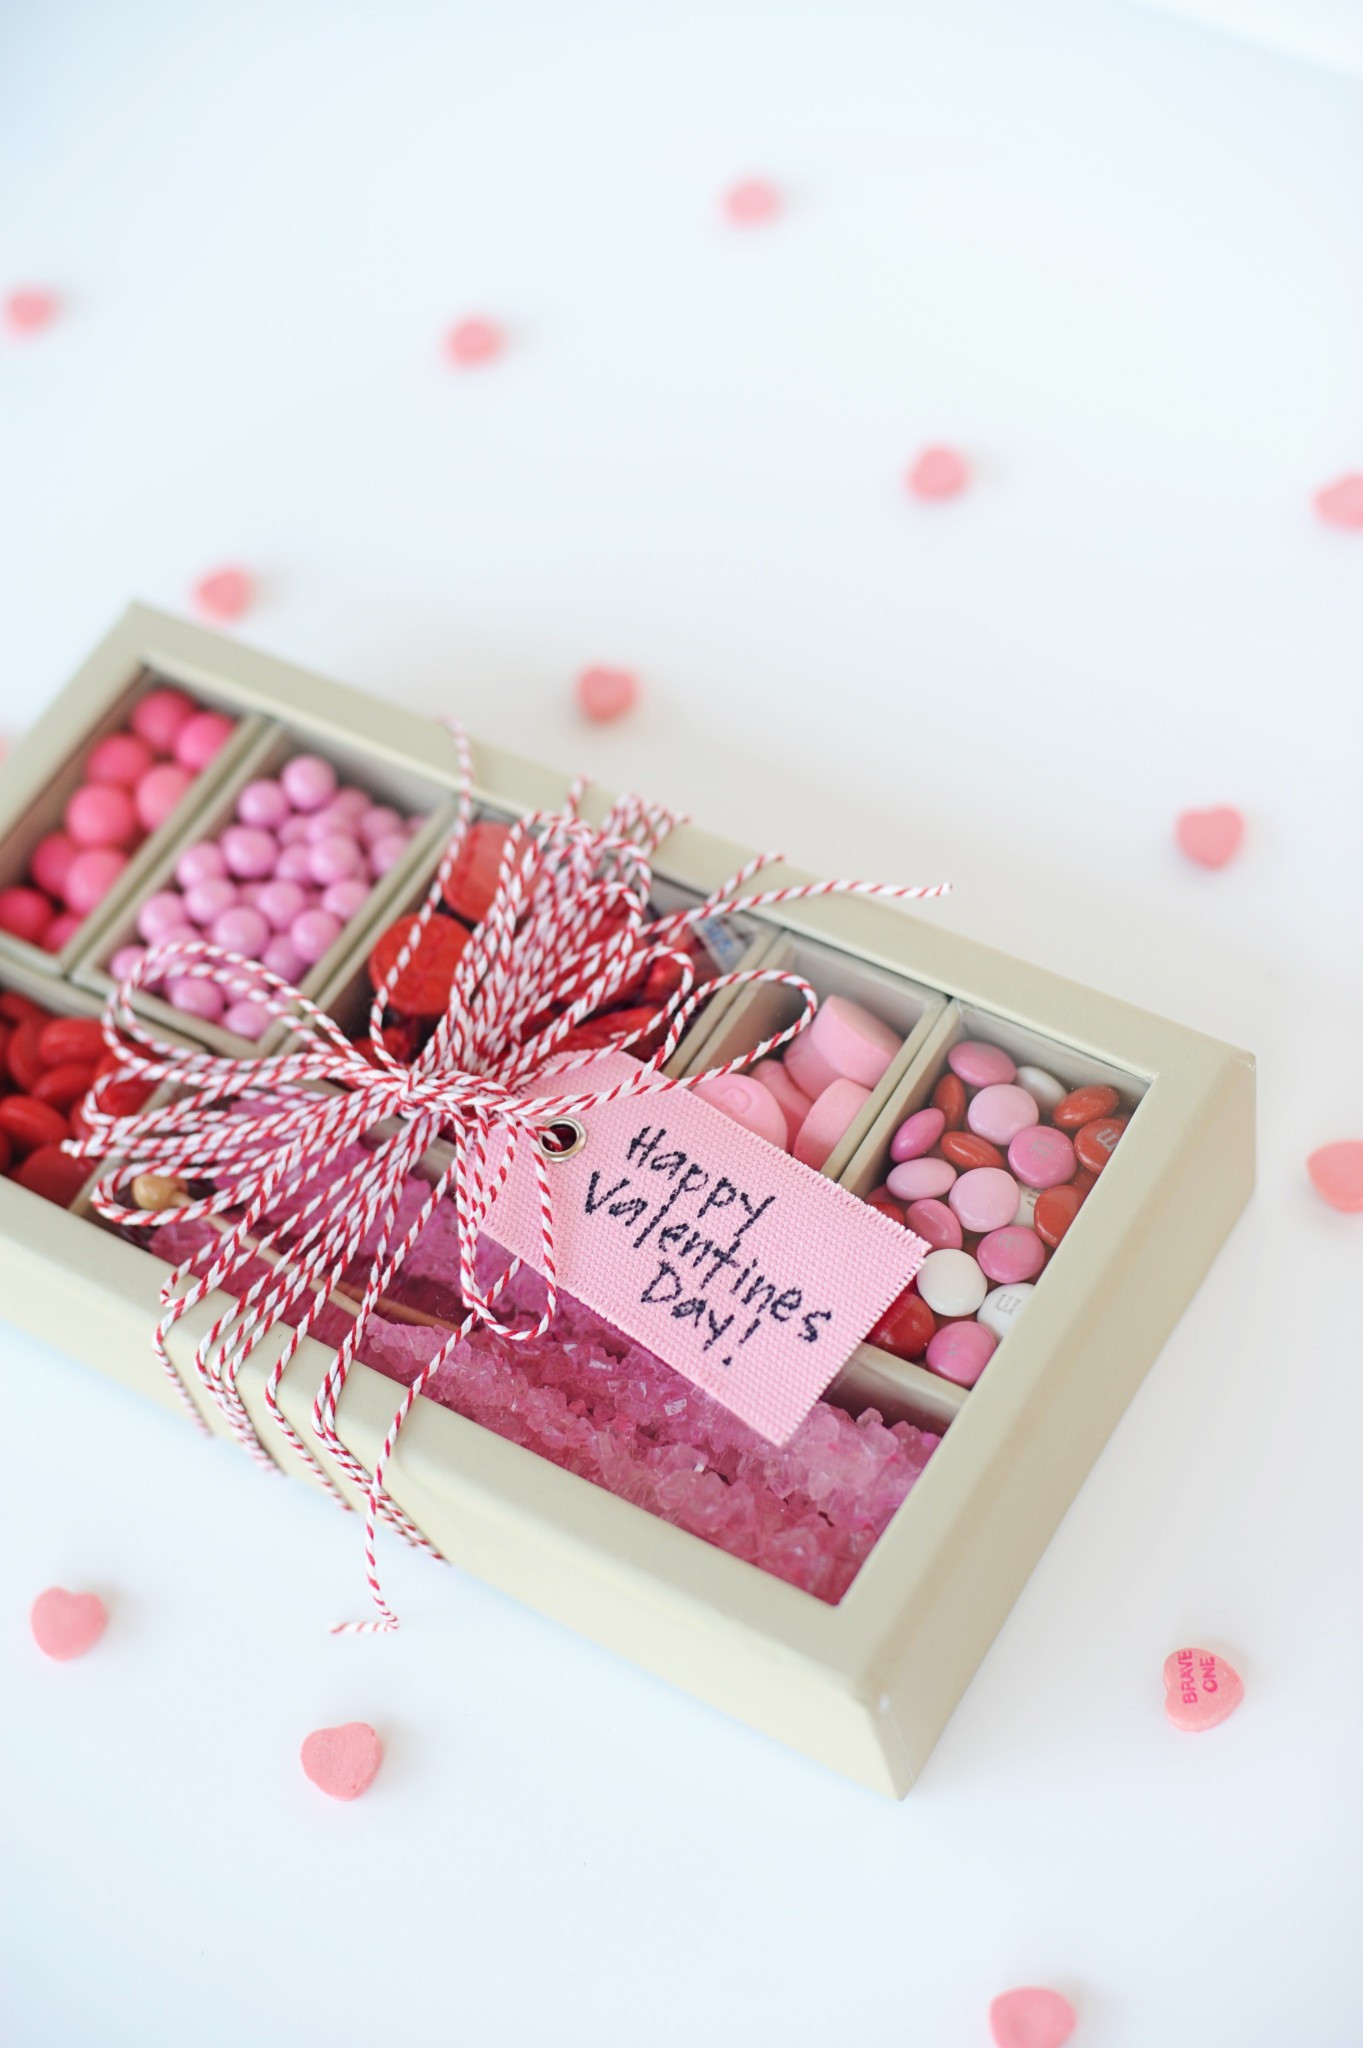 Valentines Candy Gift Ideas  Super Cute DIY Valentines Candy Gift Box Craft Red & Pink